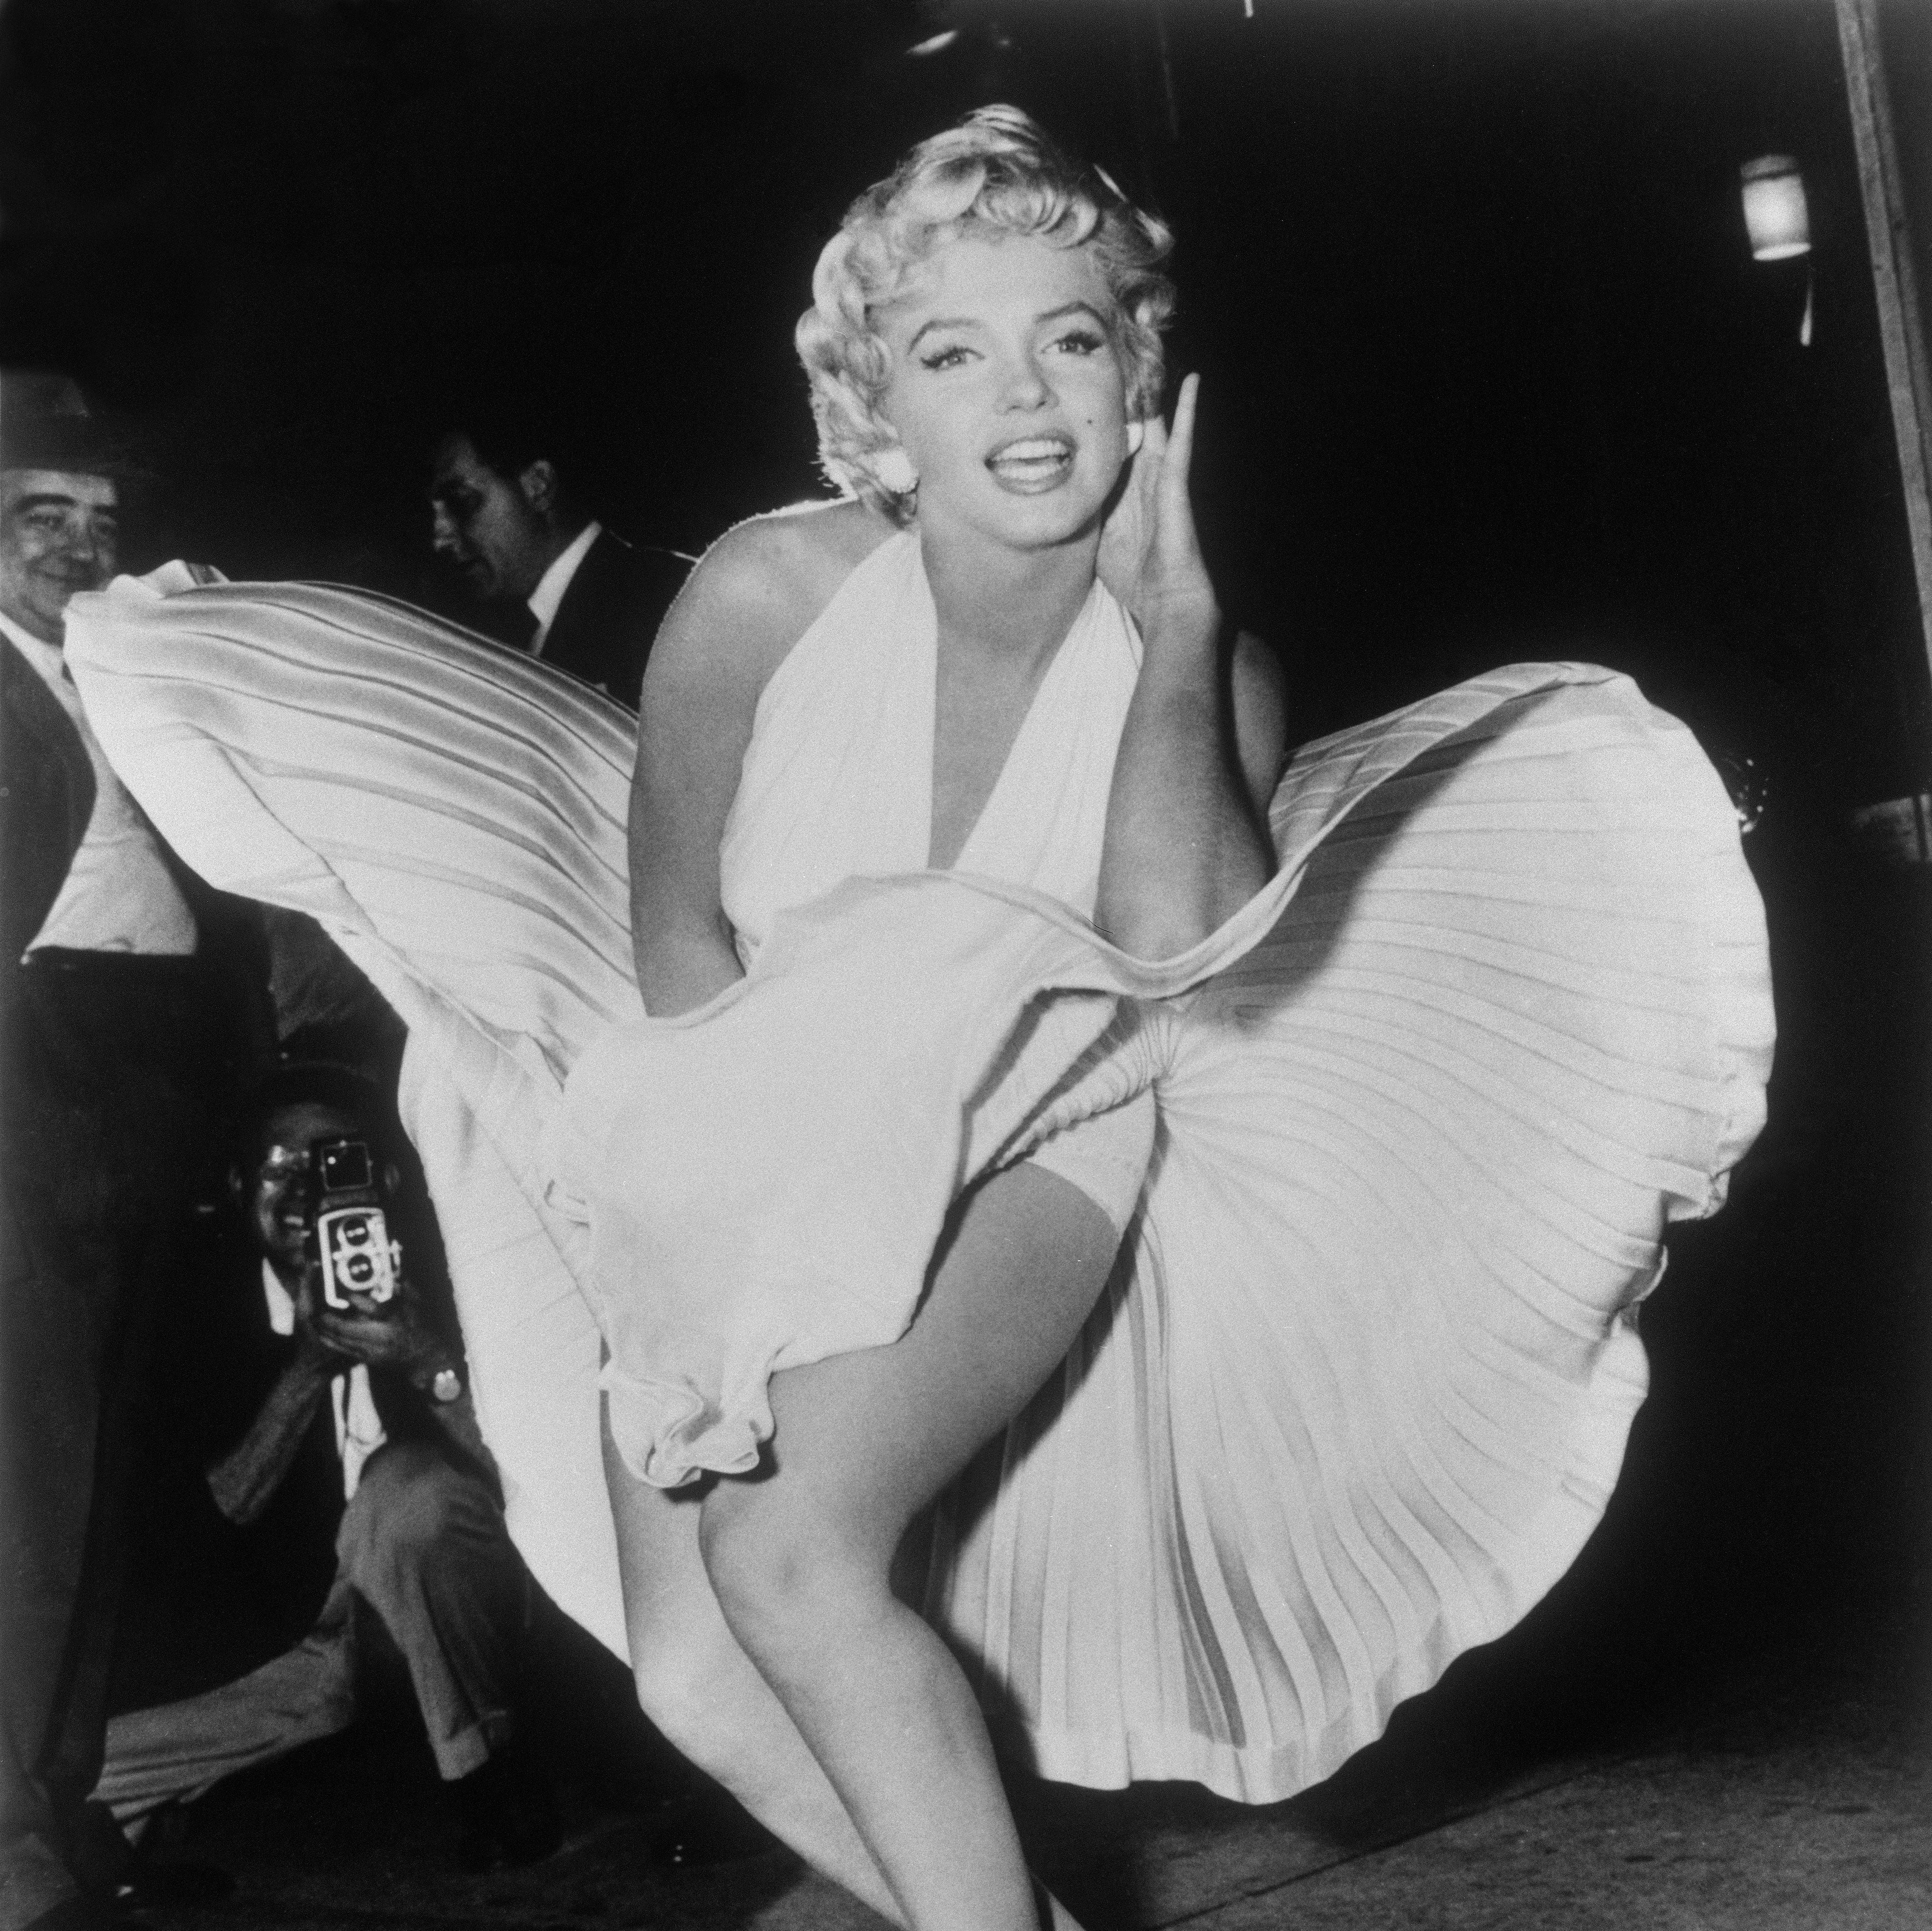 A long-lost Marilyn Monroe nude scene has been discovered. Will it ever be released?